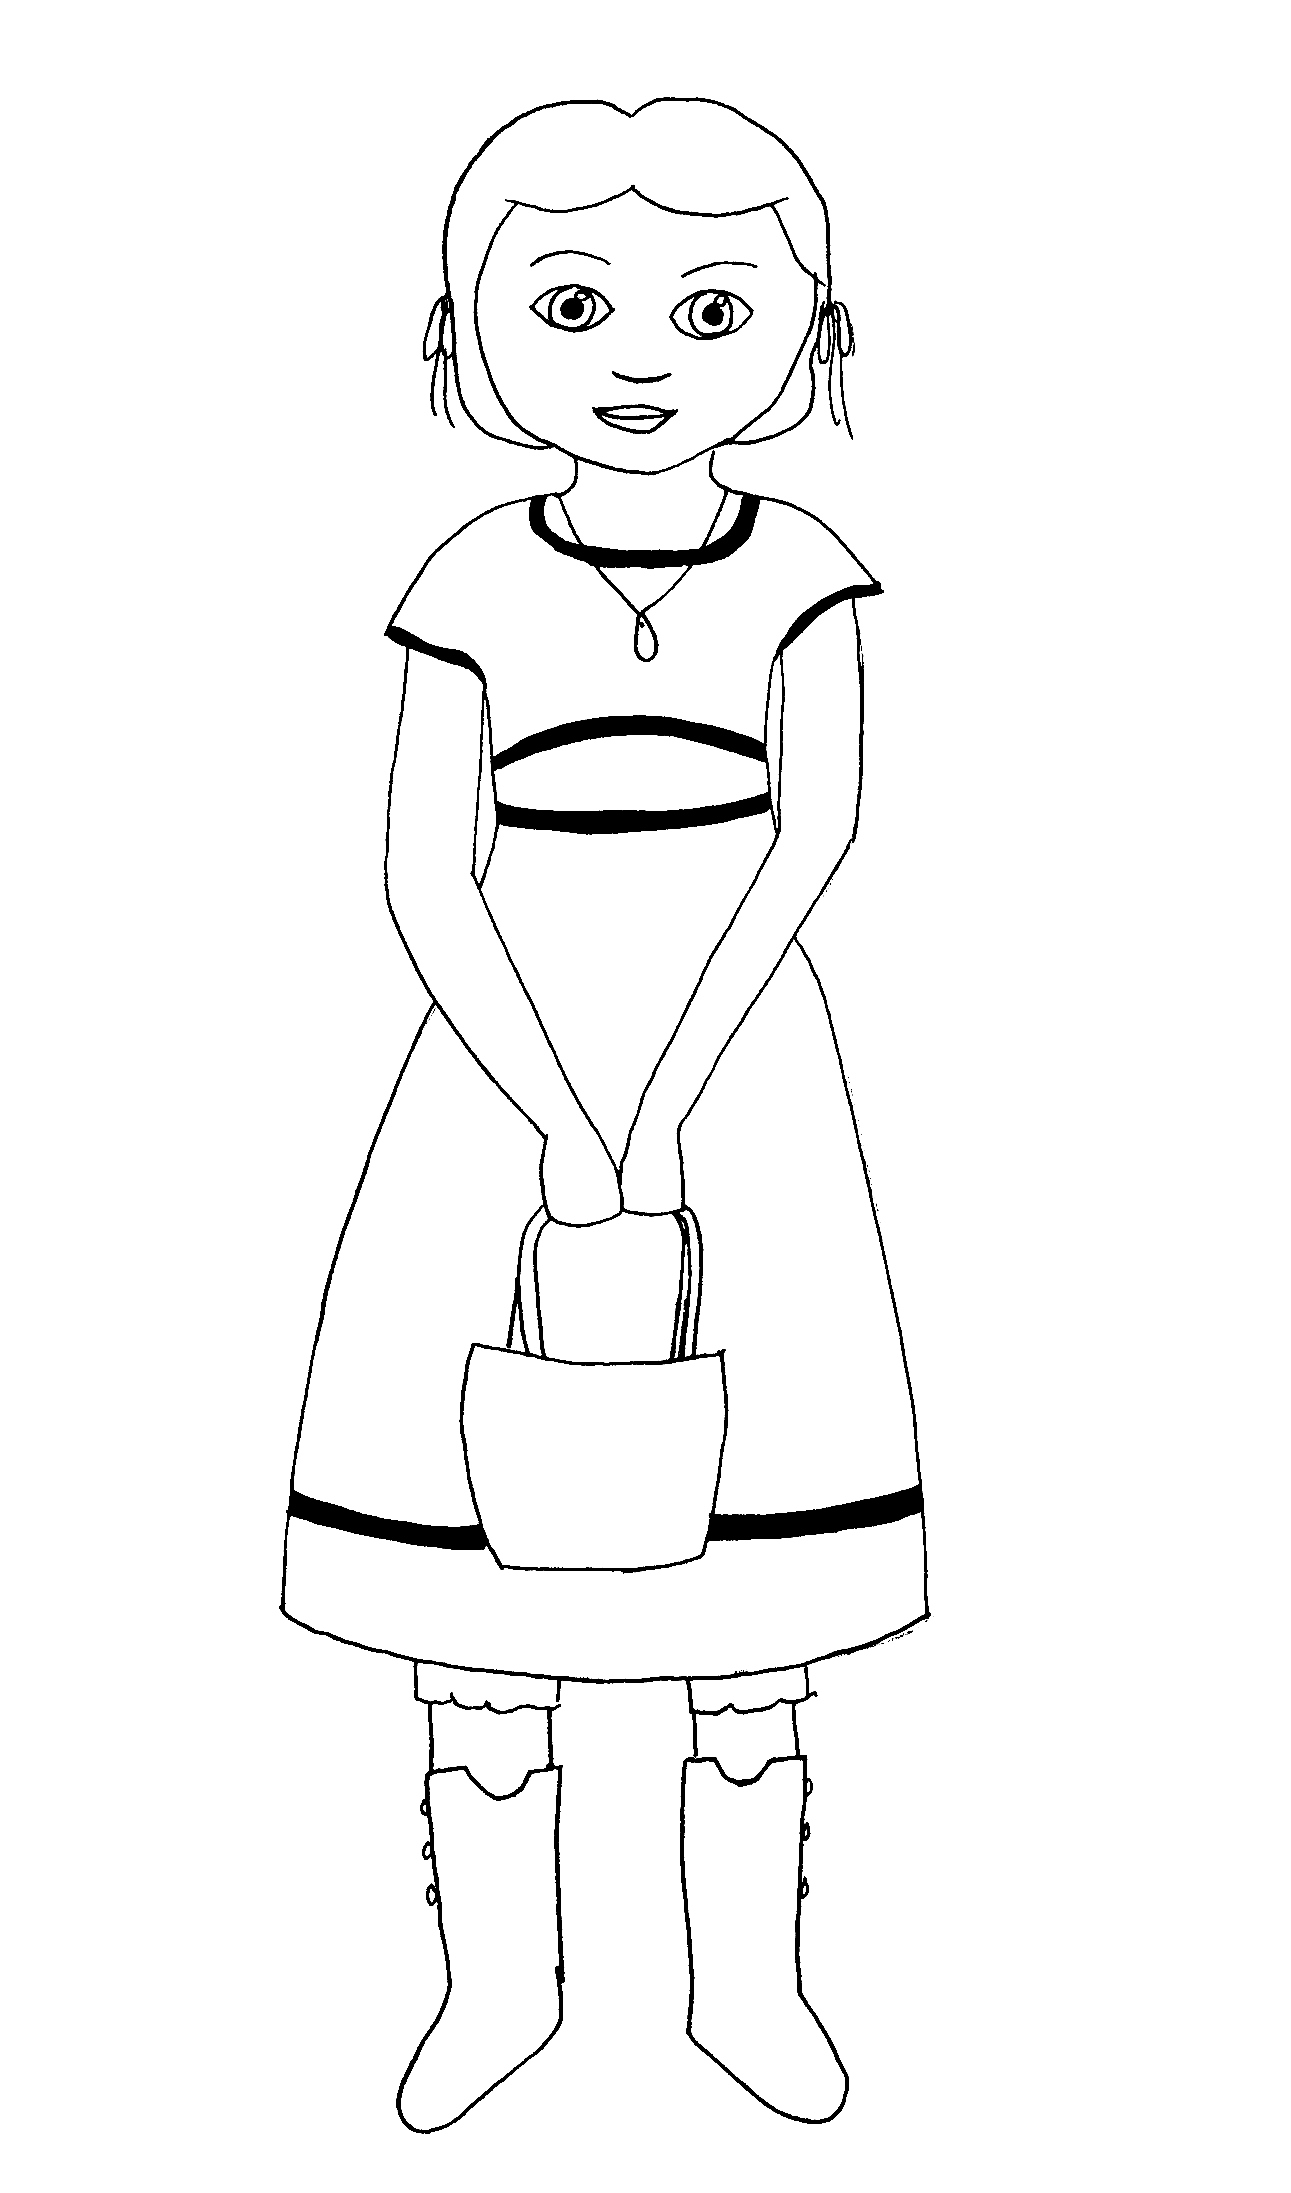 American Doll Coloring Pages  Vosvetenet